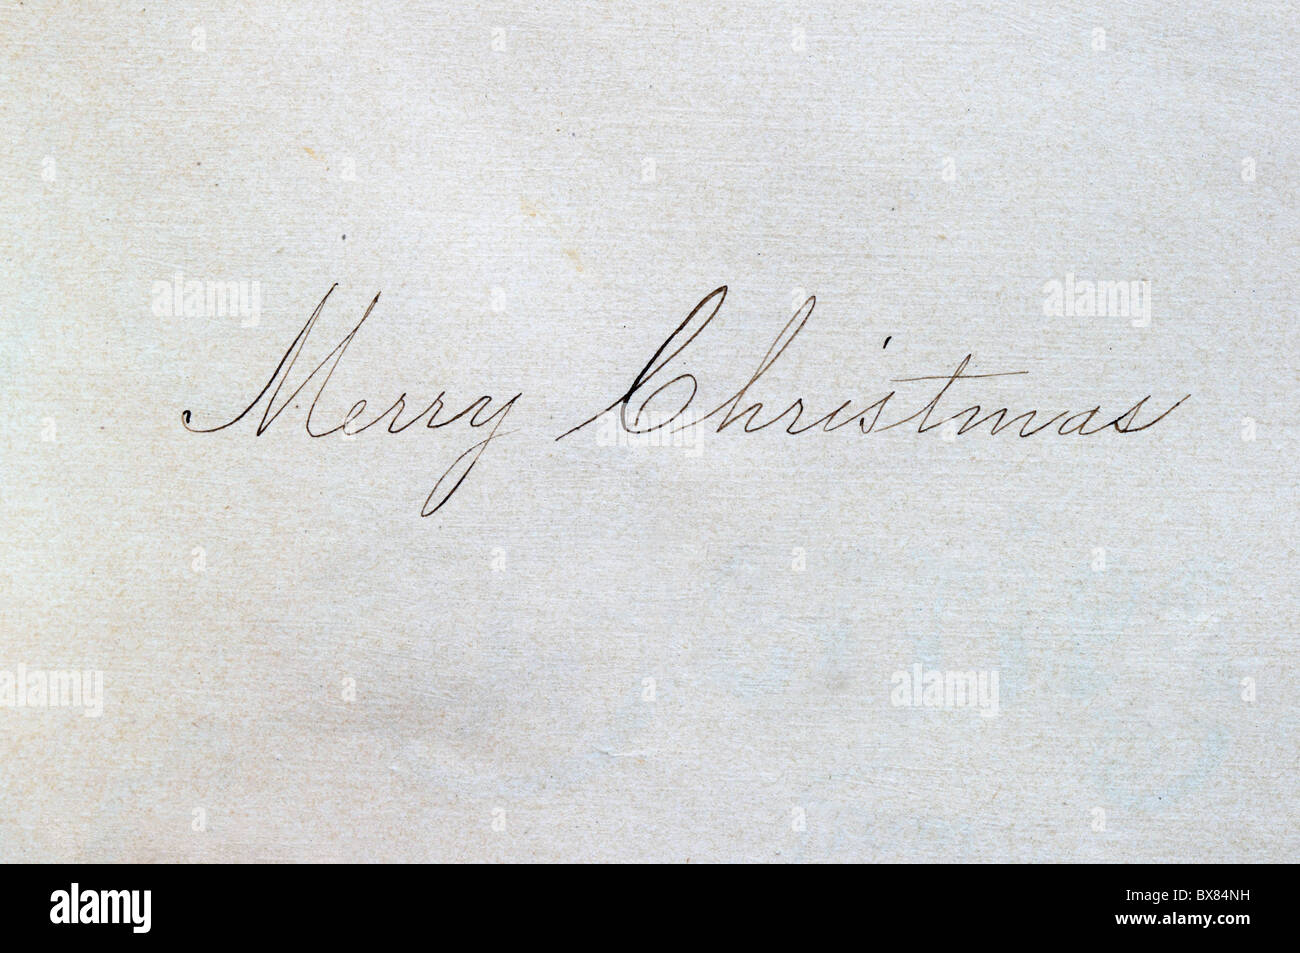 Merry Christmas In Cursive.Merry Christmas Written In Cursive Script On Paper With An